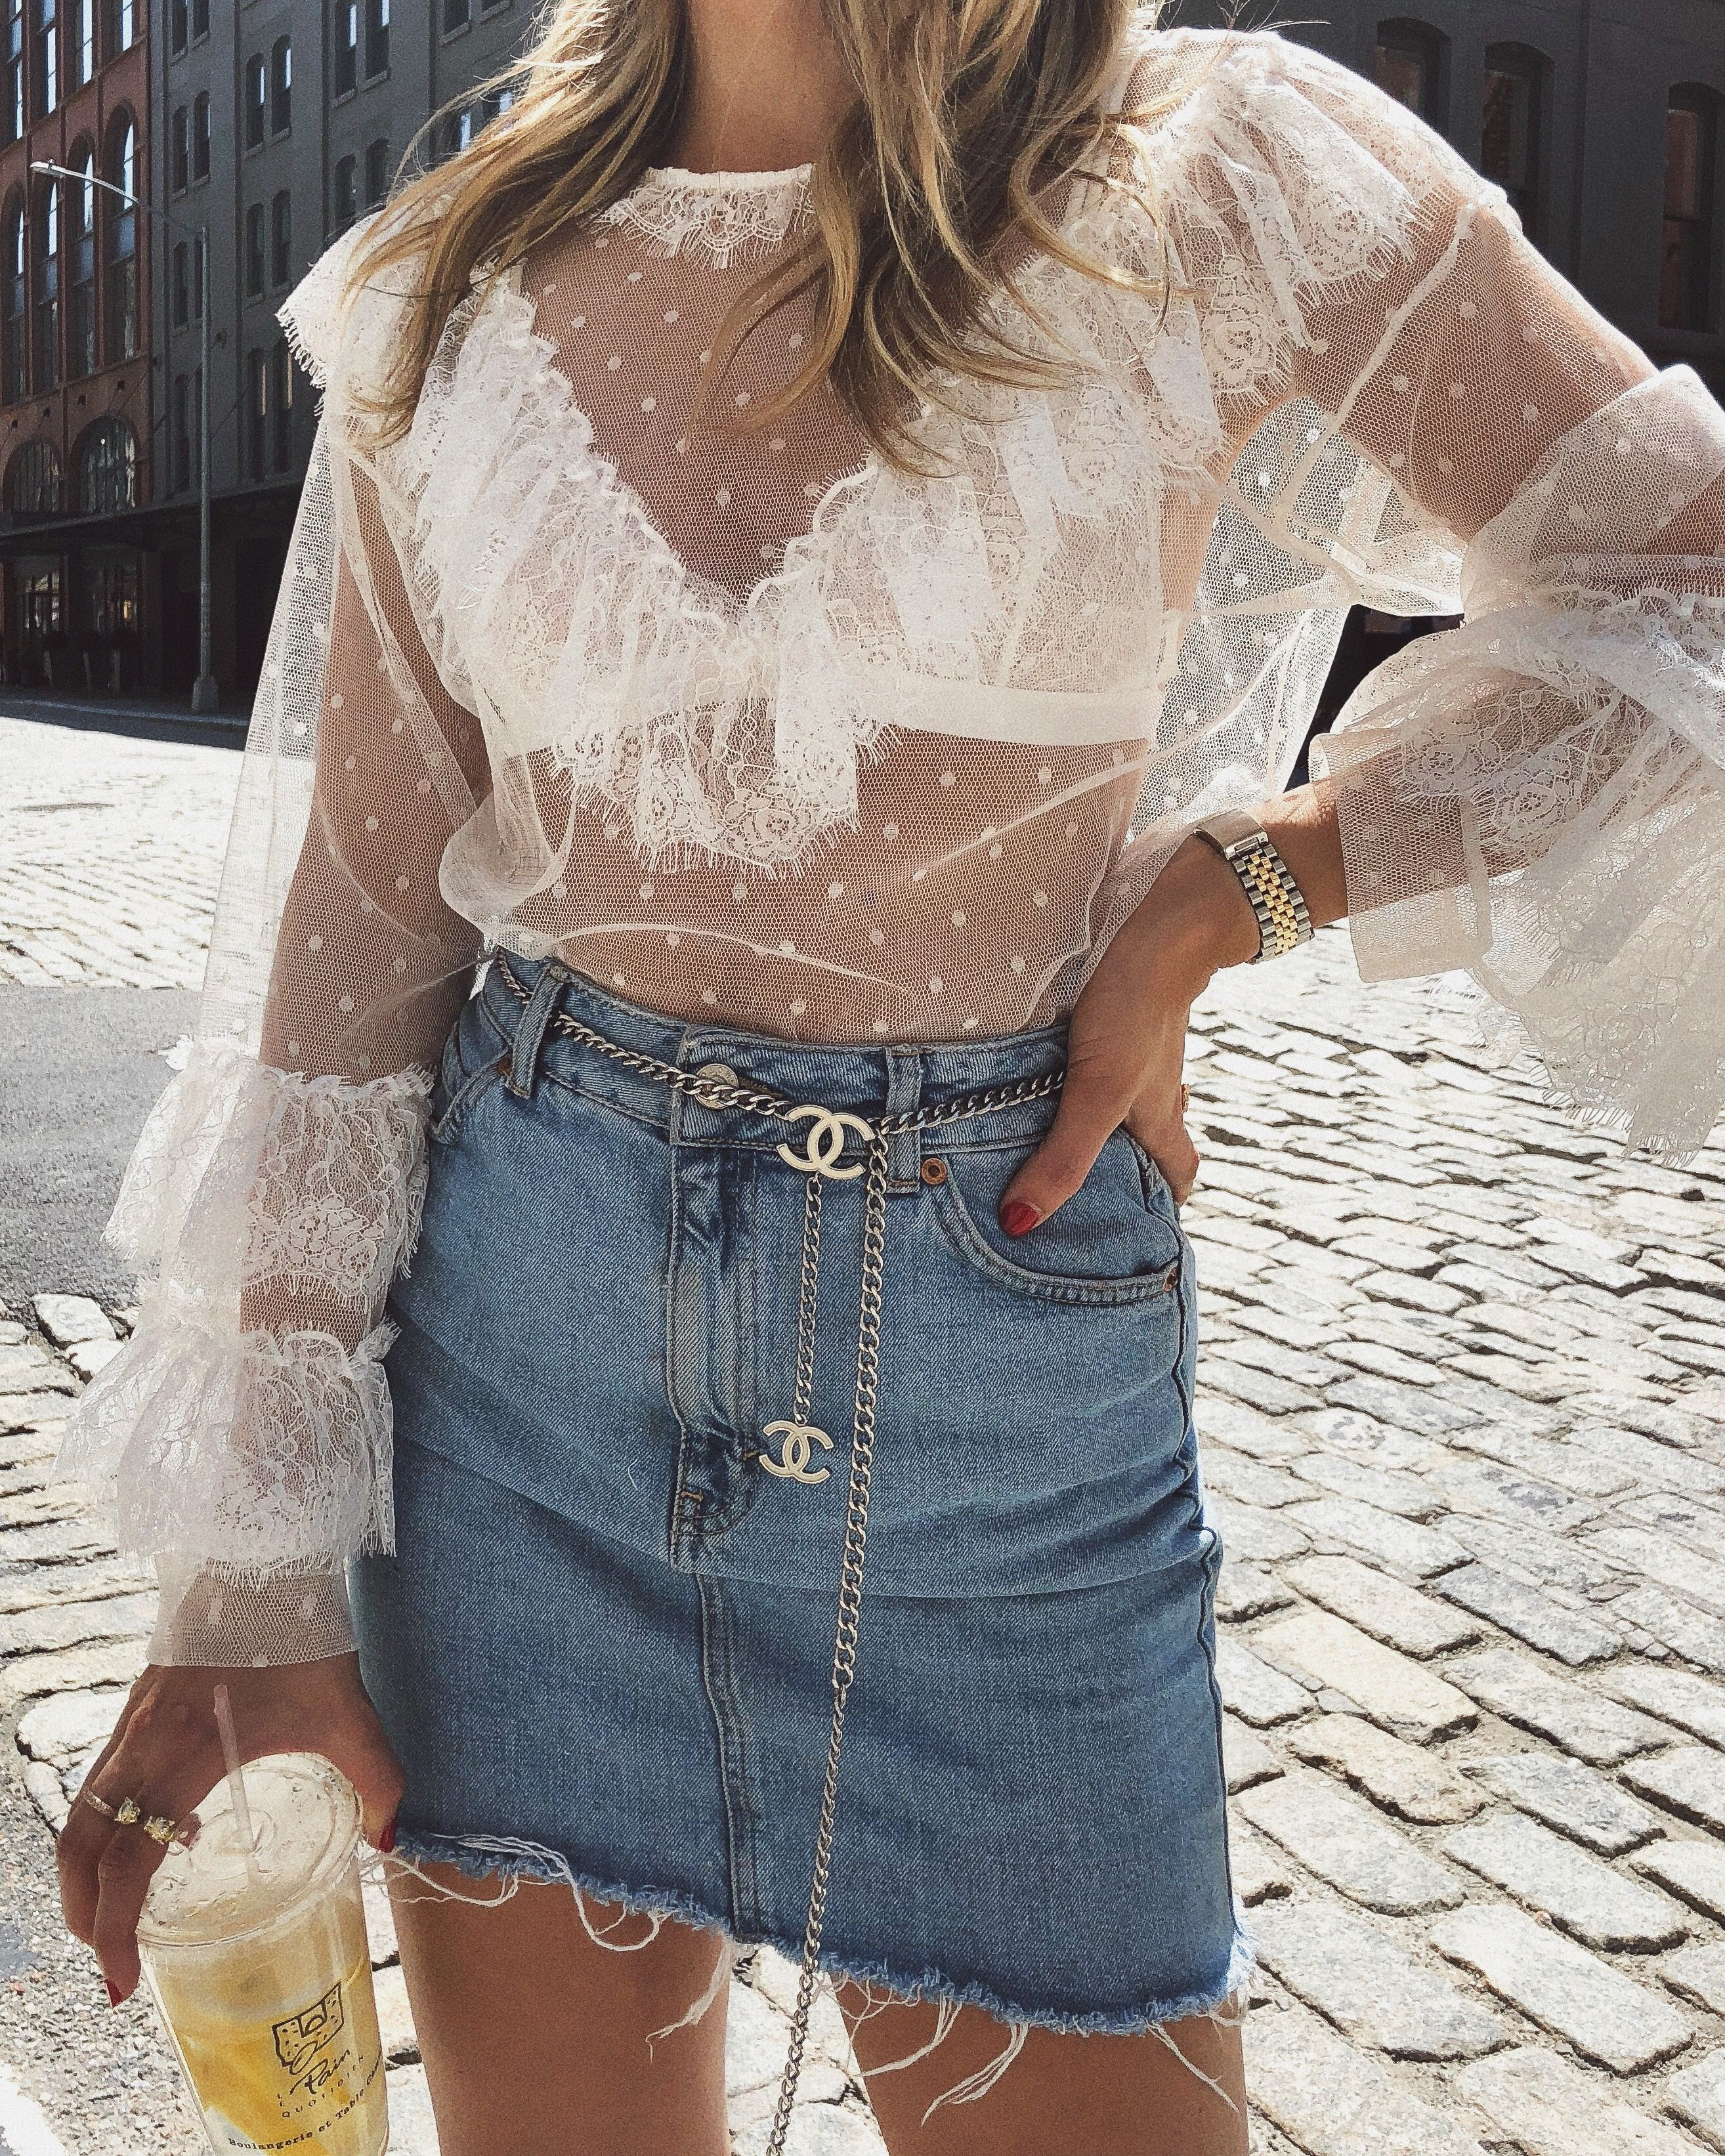 67add4e8d White Lace Top - Denim Skirt - Chain Belt - Chanel Belt - NYC Street Style  - Summer Style Outfit - Summer Outfit Inspo